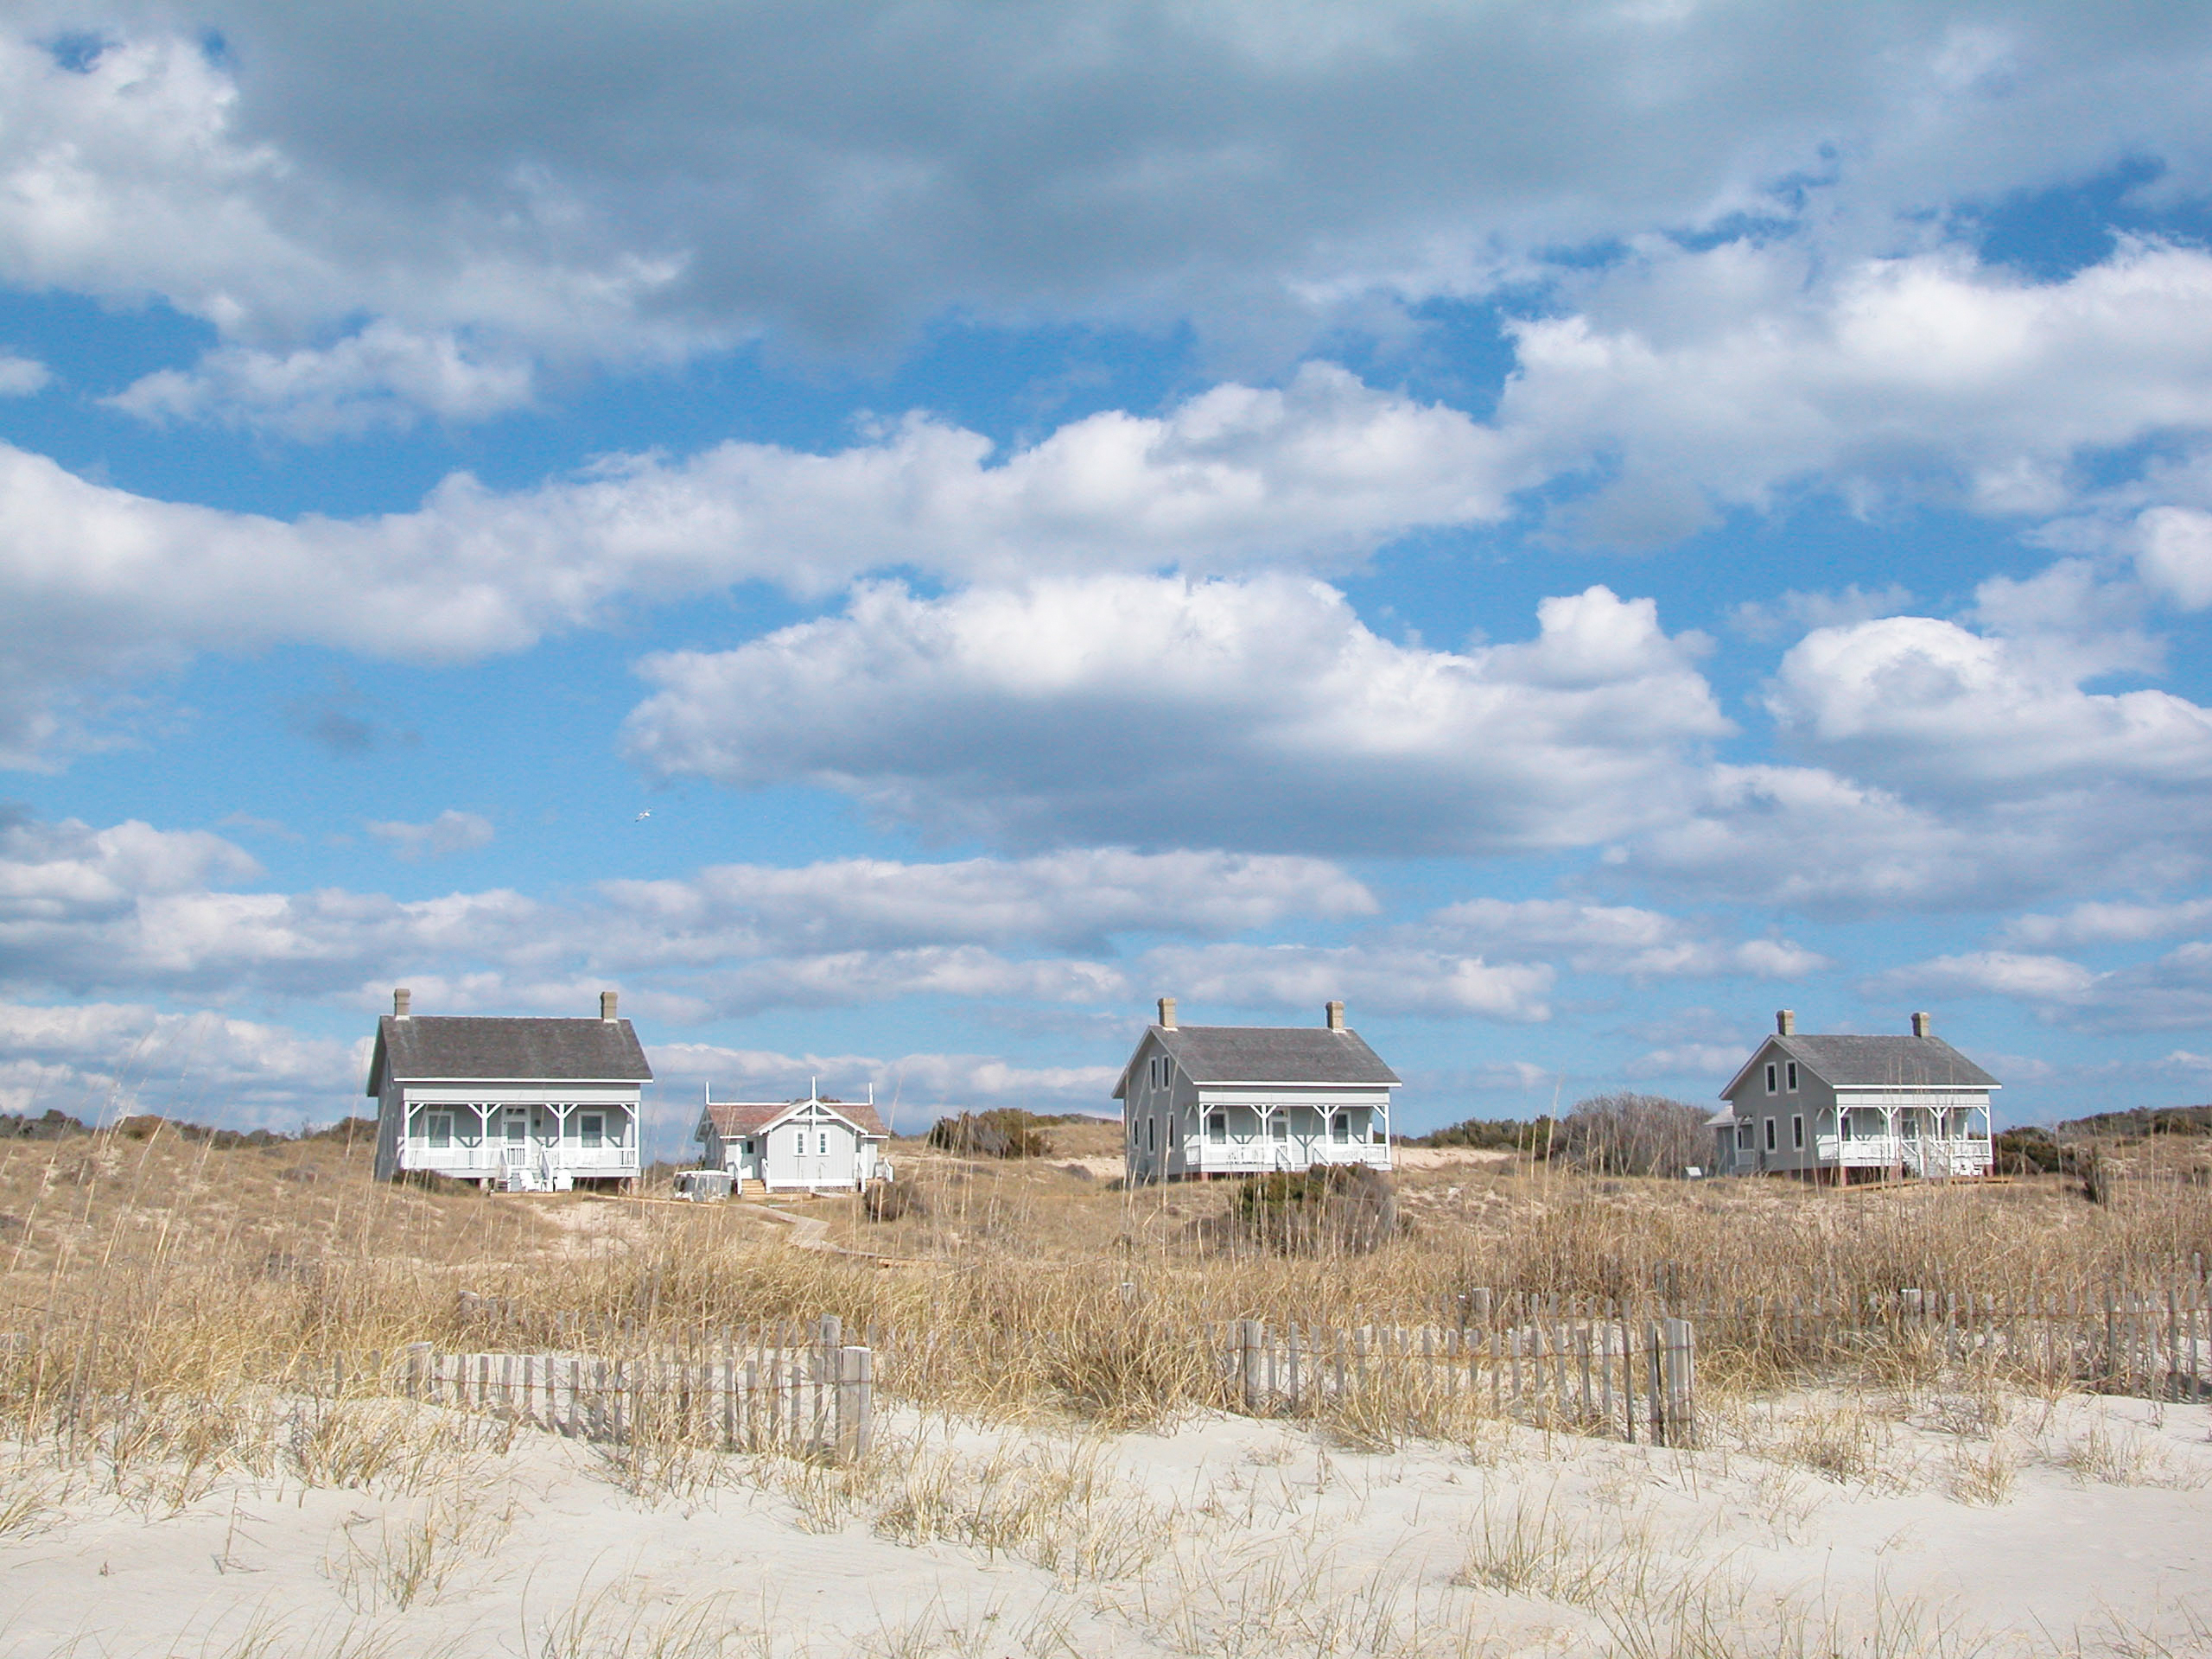 Captain Charlie's Cottages, Bald Head Island, North Carolina